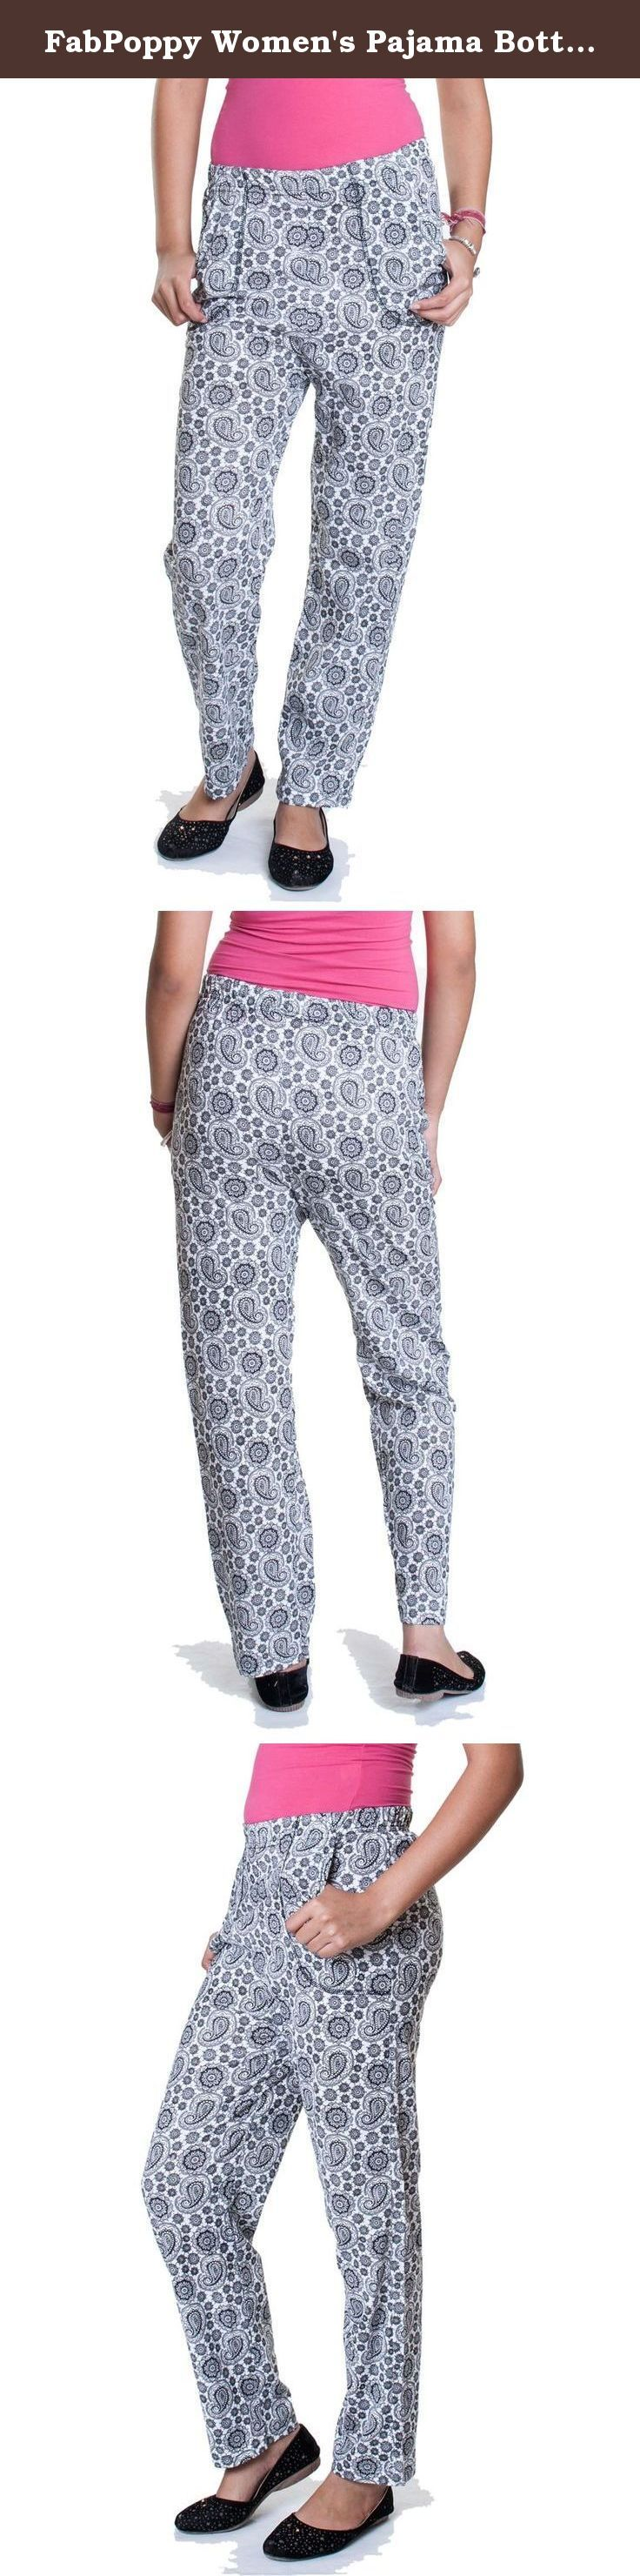 FabPoppy Women's Pajama Bottom (Medium). FabPoppy brings you a fresh trend in pajamas. Our printed cotton pajamas will offer you a cool and refreshing looking in nightwear pajamas. This Indian ethnic printed pajama bottom is a wonderful addition to your wardrobe and will match with any colored top. Wear our cotton pajamas sleepwear and look stylish and trendy!.